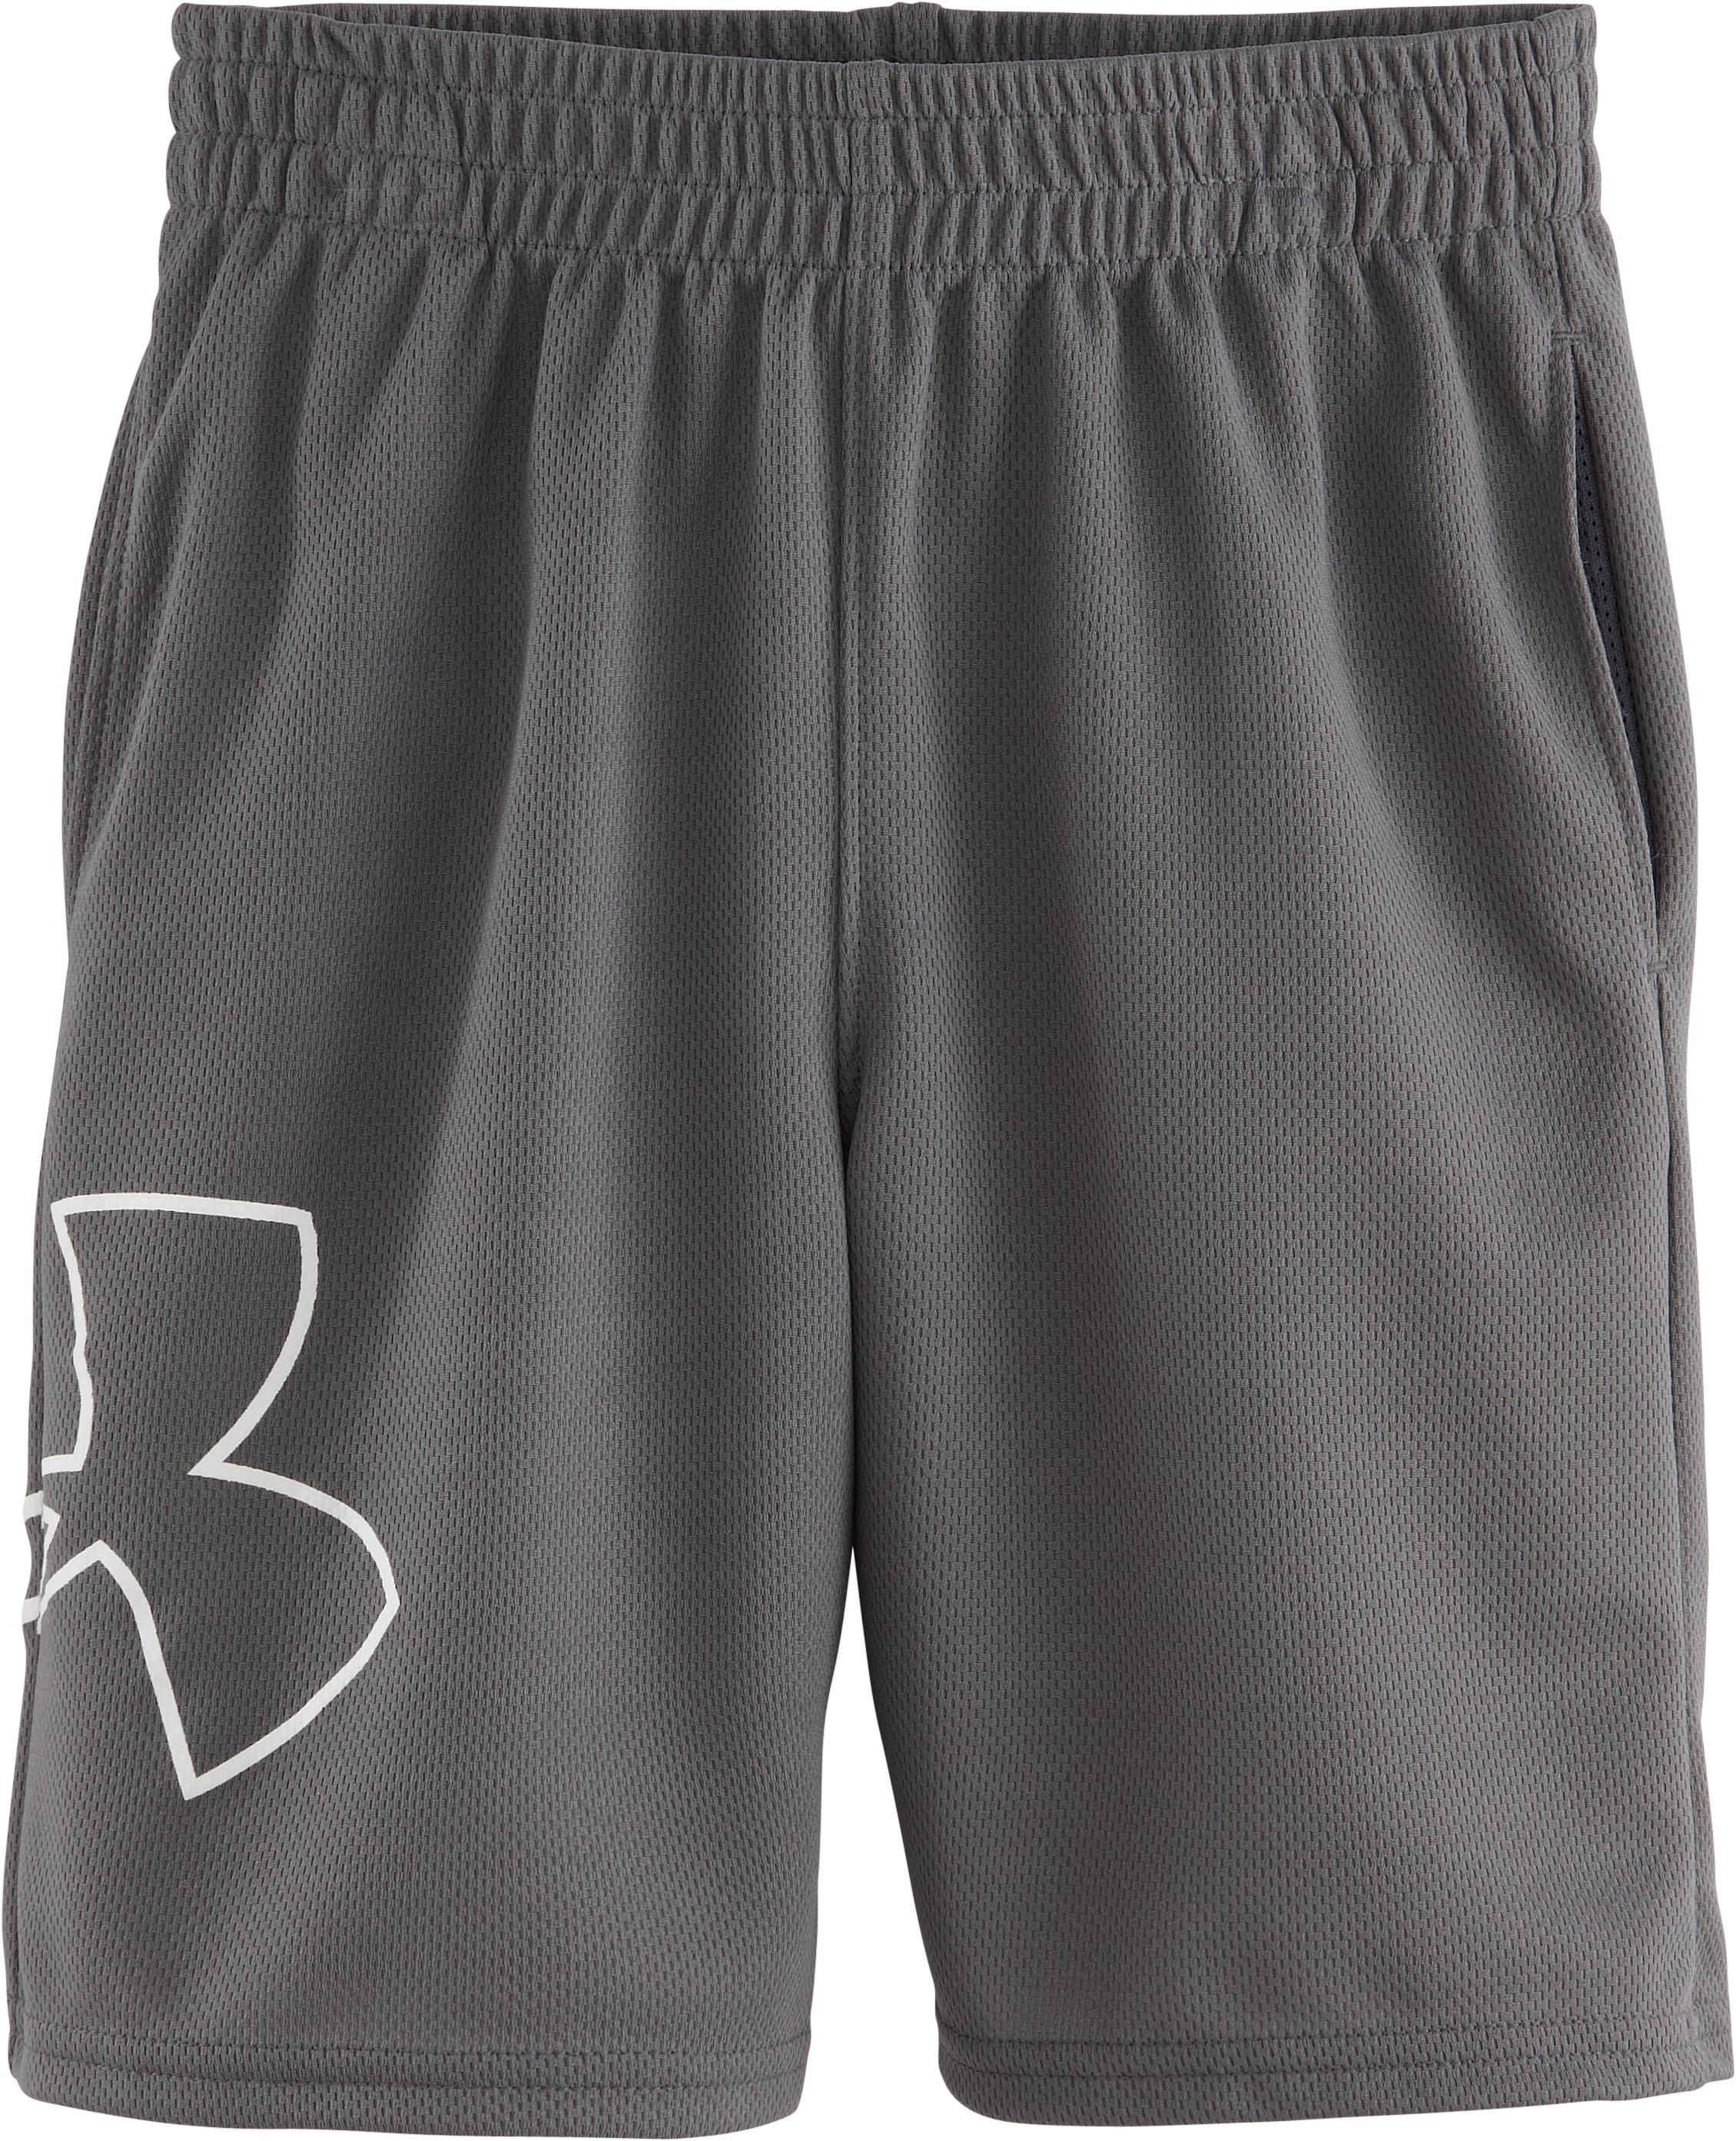 Boys' Toddler UA Souped Up Shorts, Graphite, Laydown